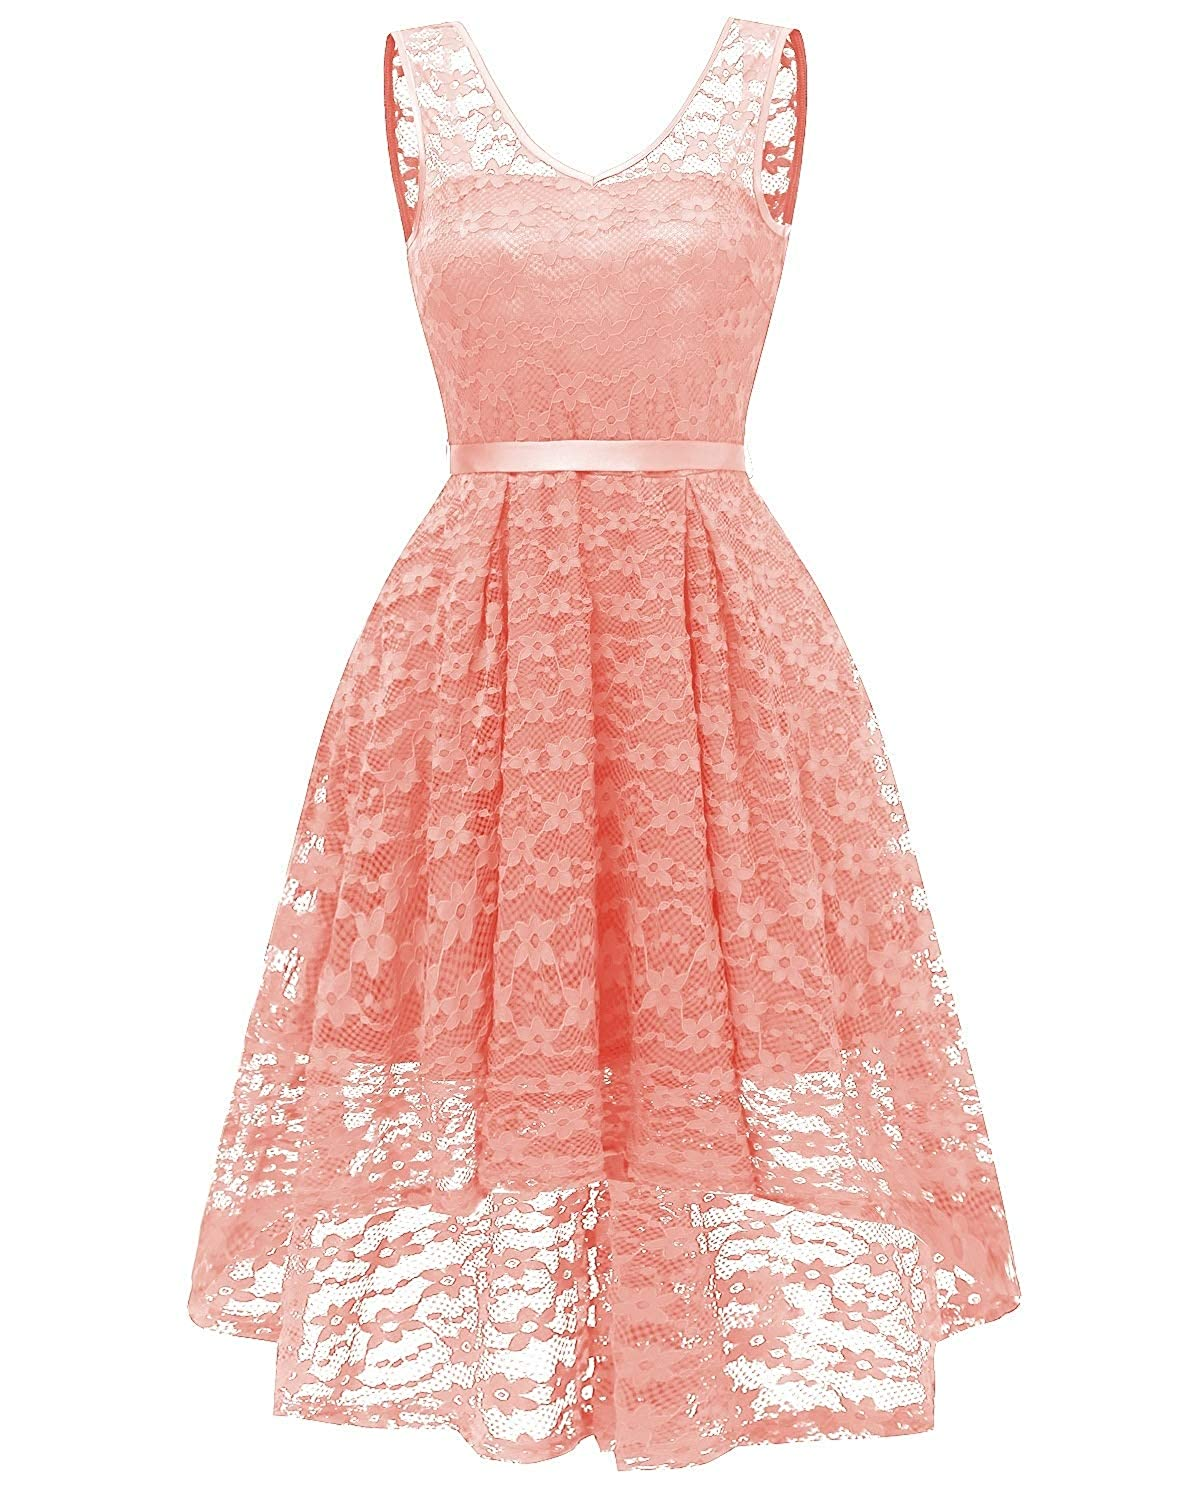 Pink Zooka Summer Women Midi Dress Print Sleeveless Ladies Lace Dresses Vintage Party